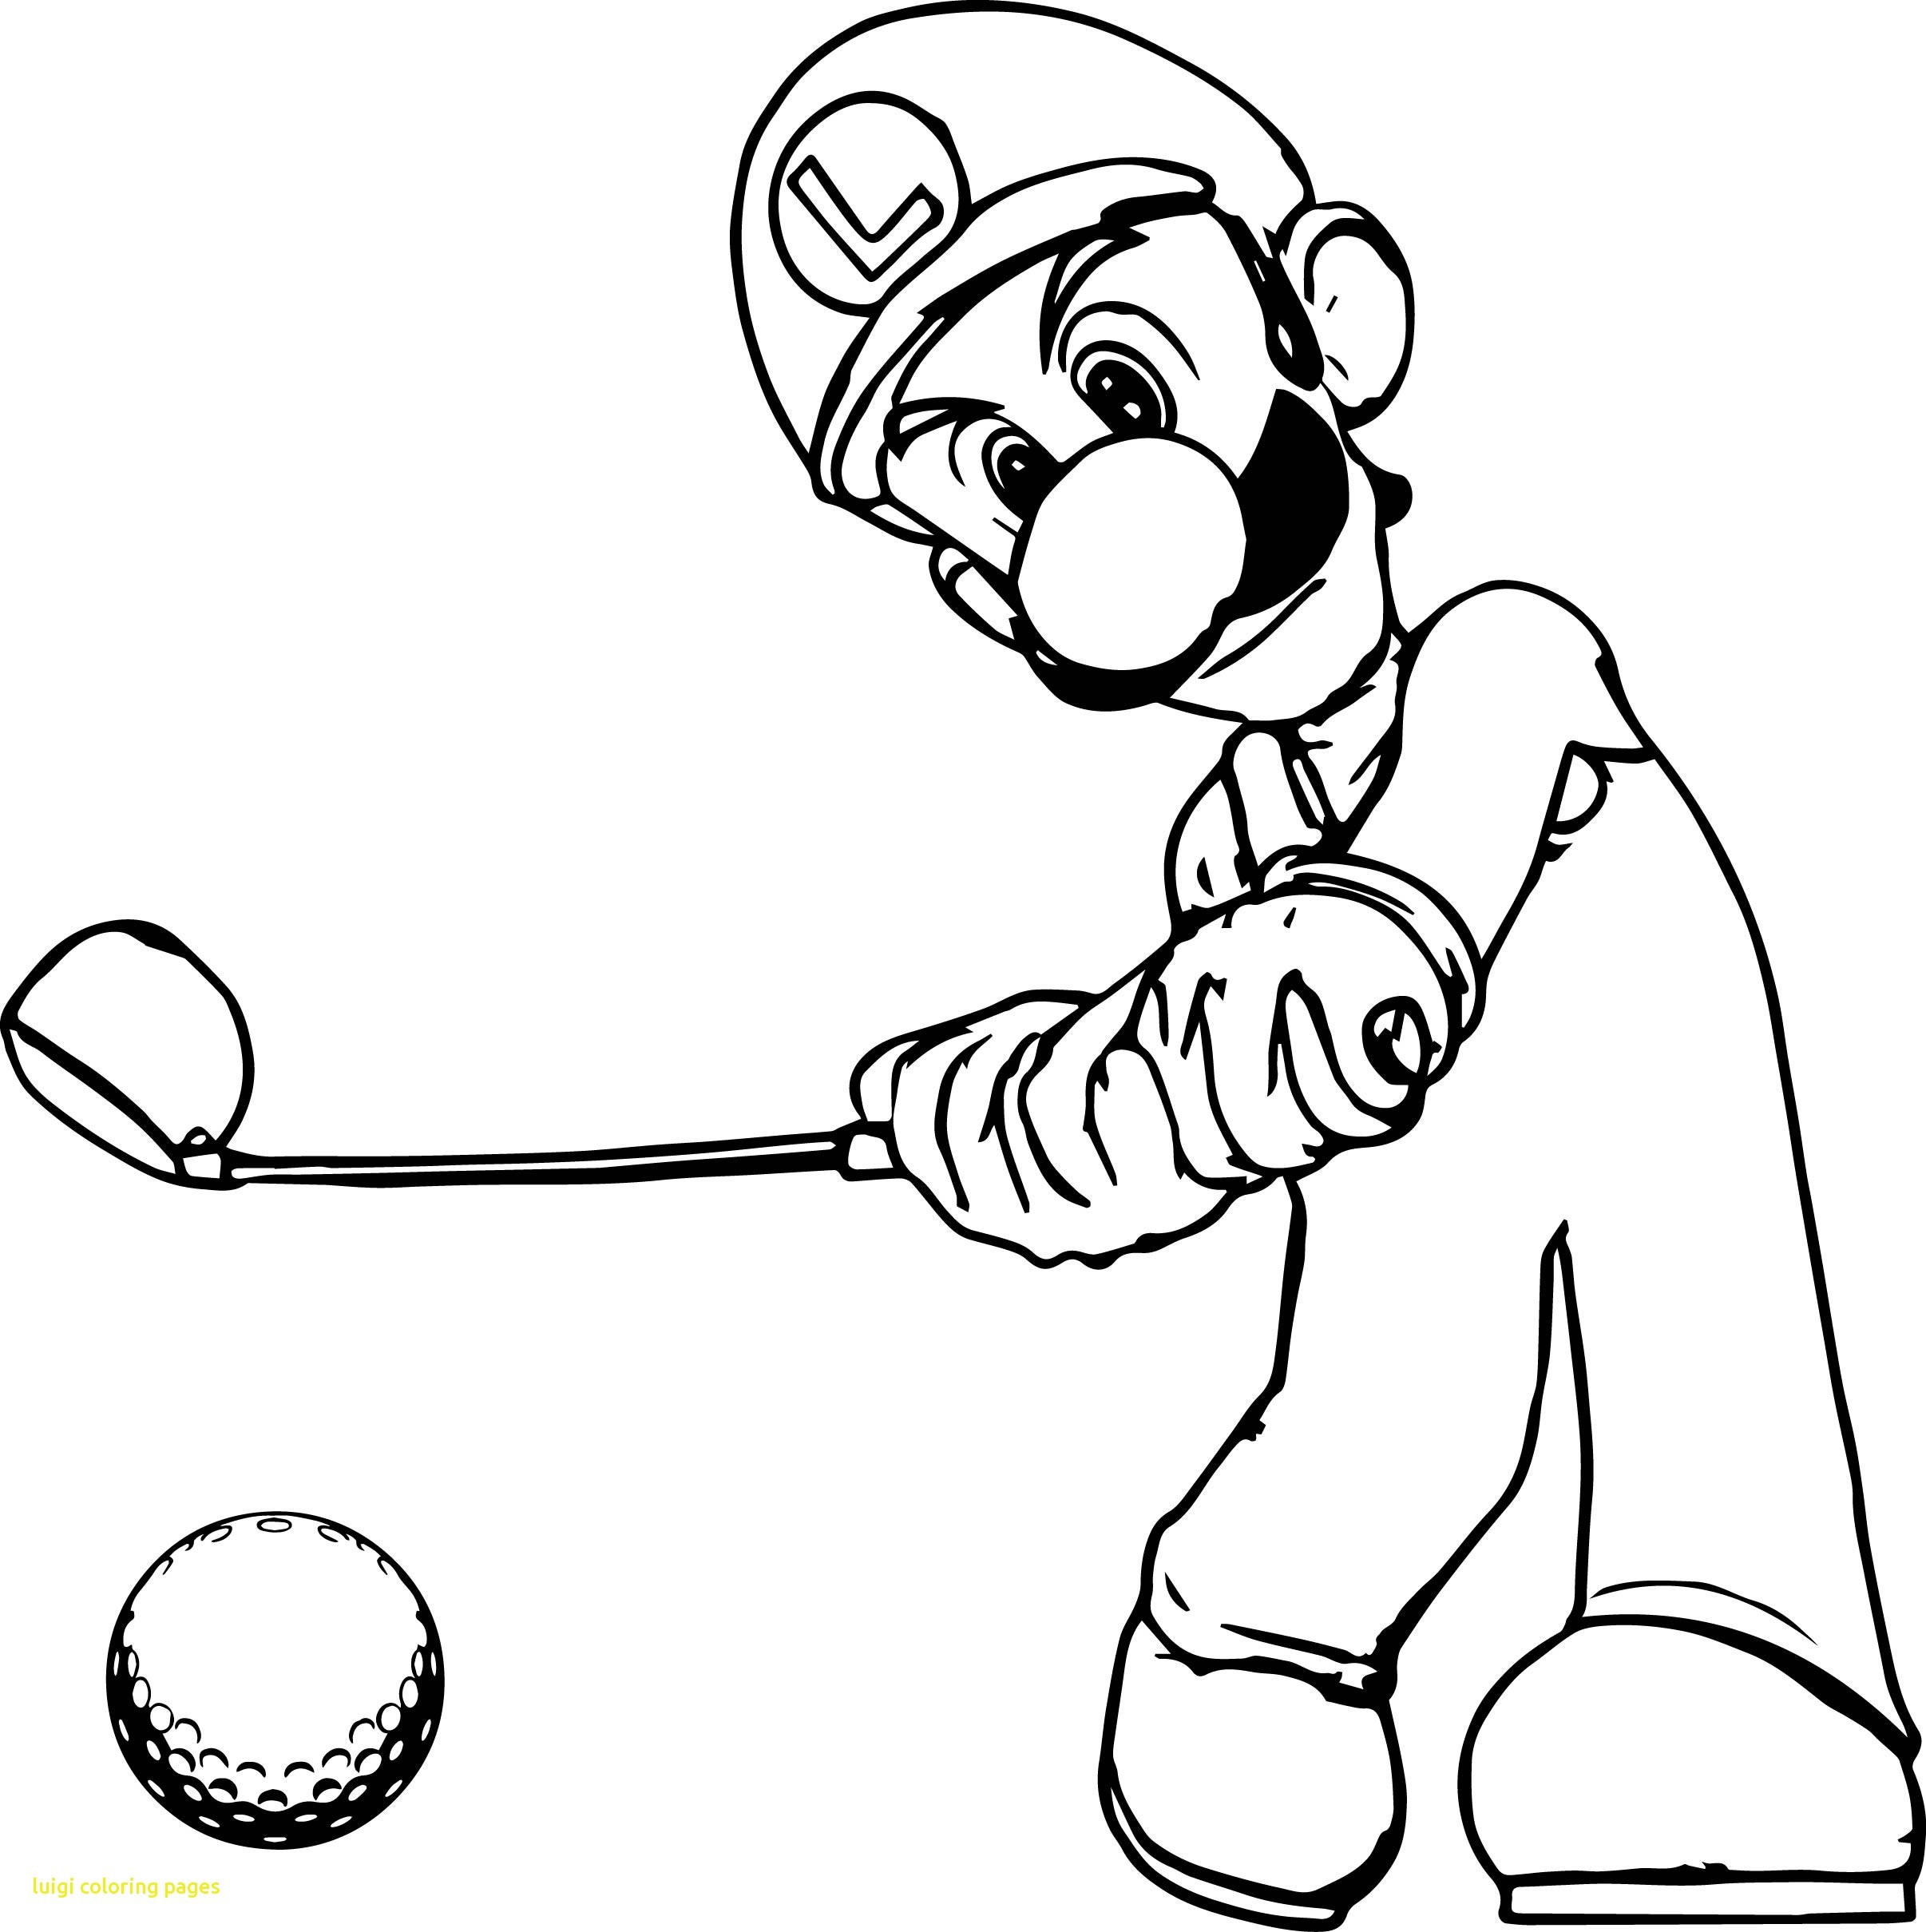 2412x2419 Luigi Coloring Pages Luxury Luigi Coloring Pages With Super Mario